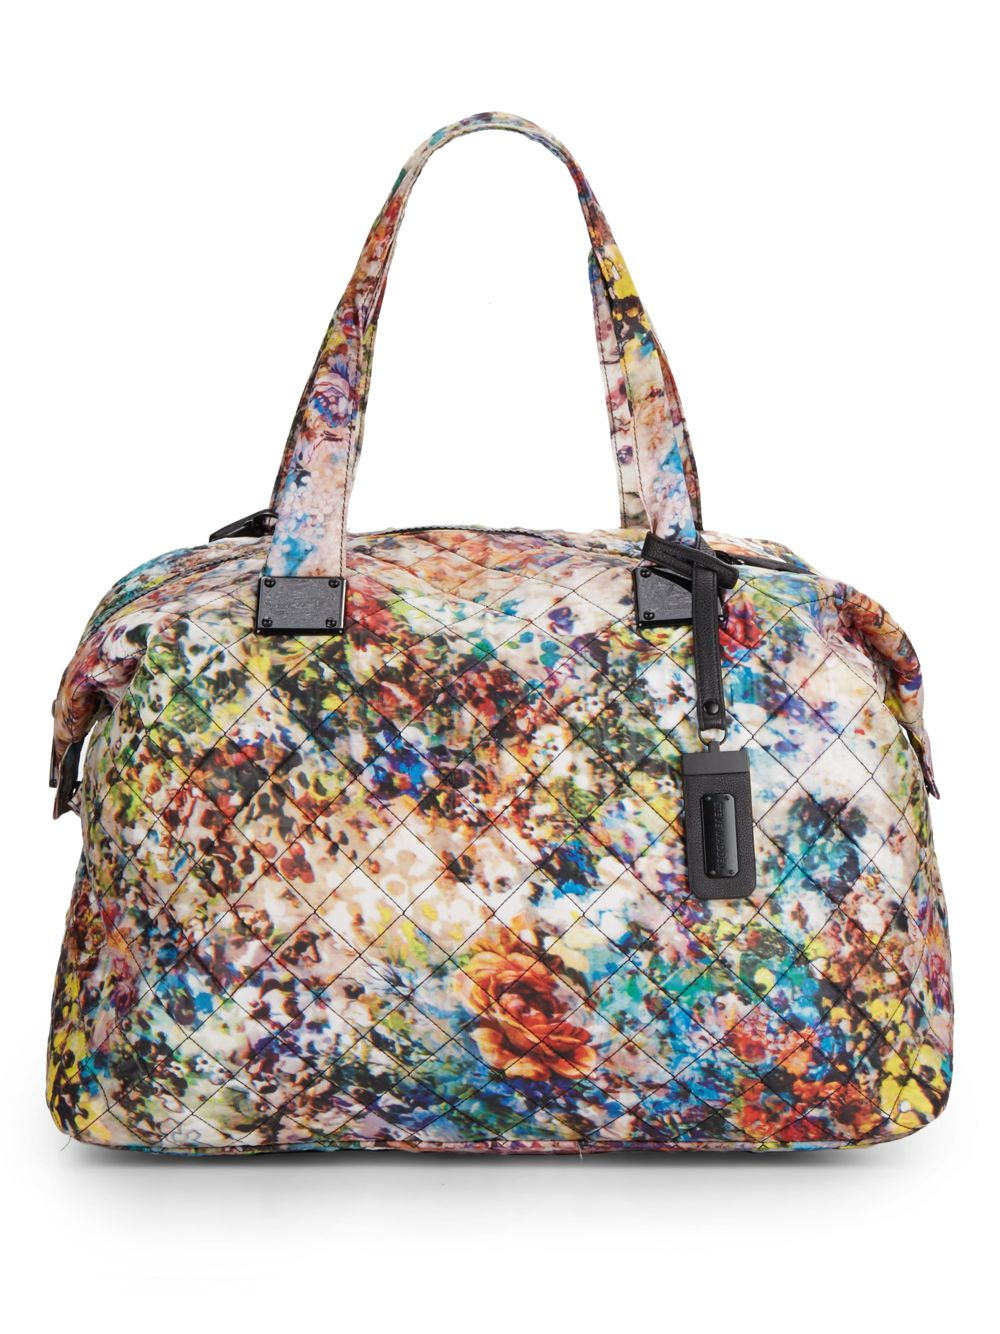 Lyst - Steve Madden Quilted Floral-print Duffle Bag In White